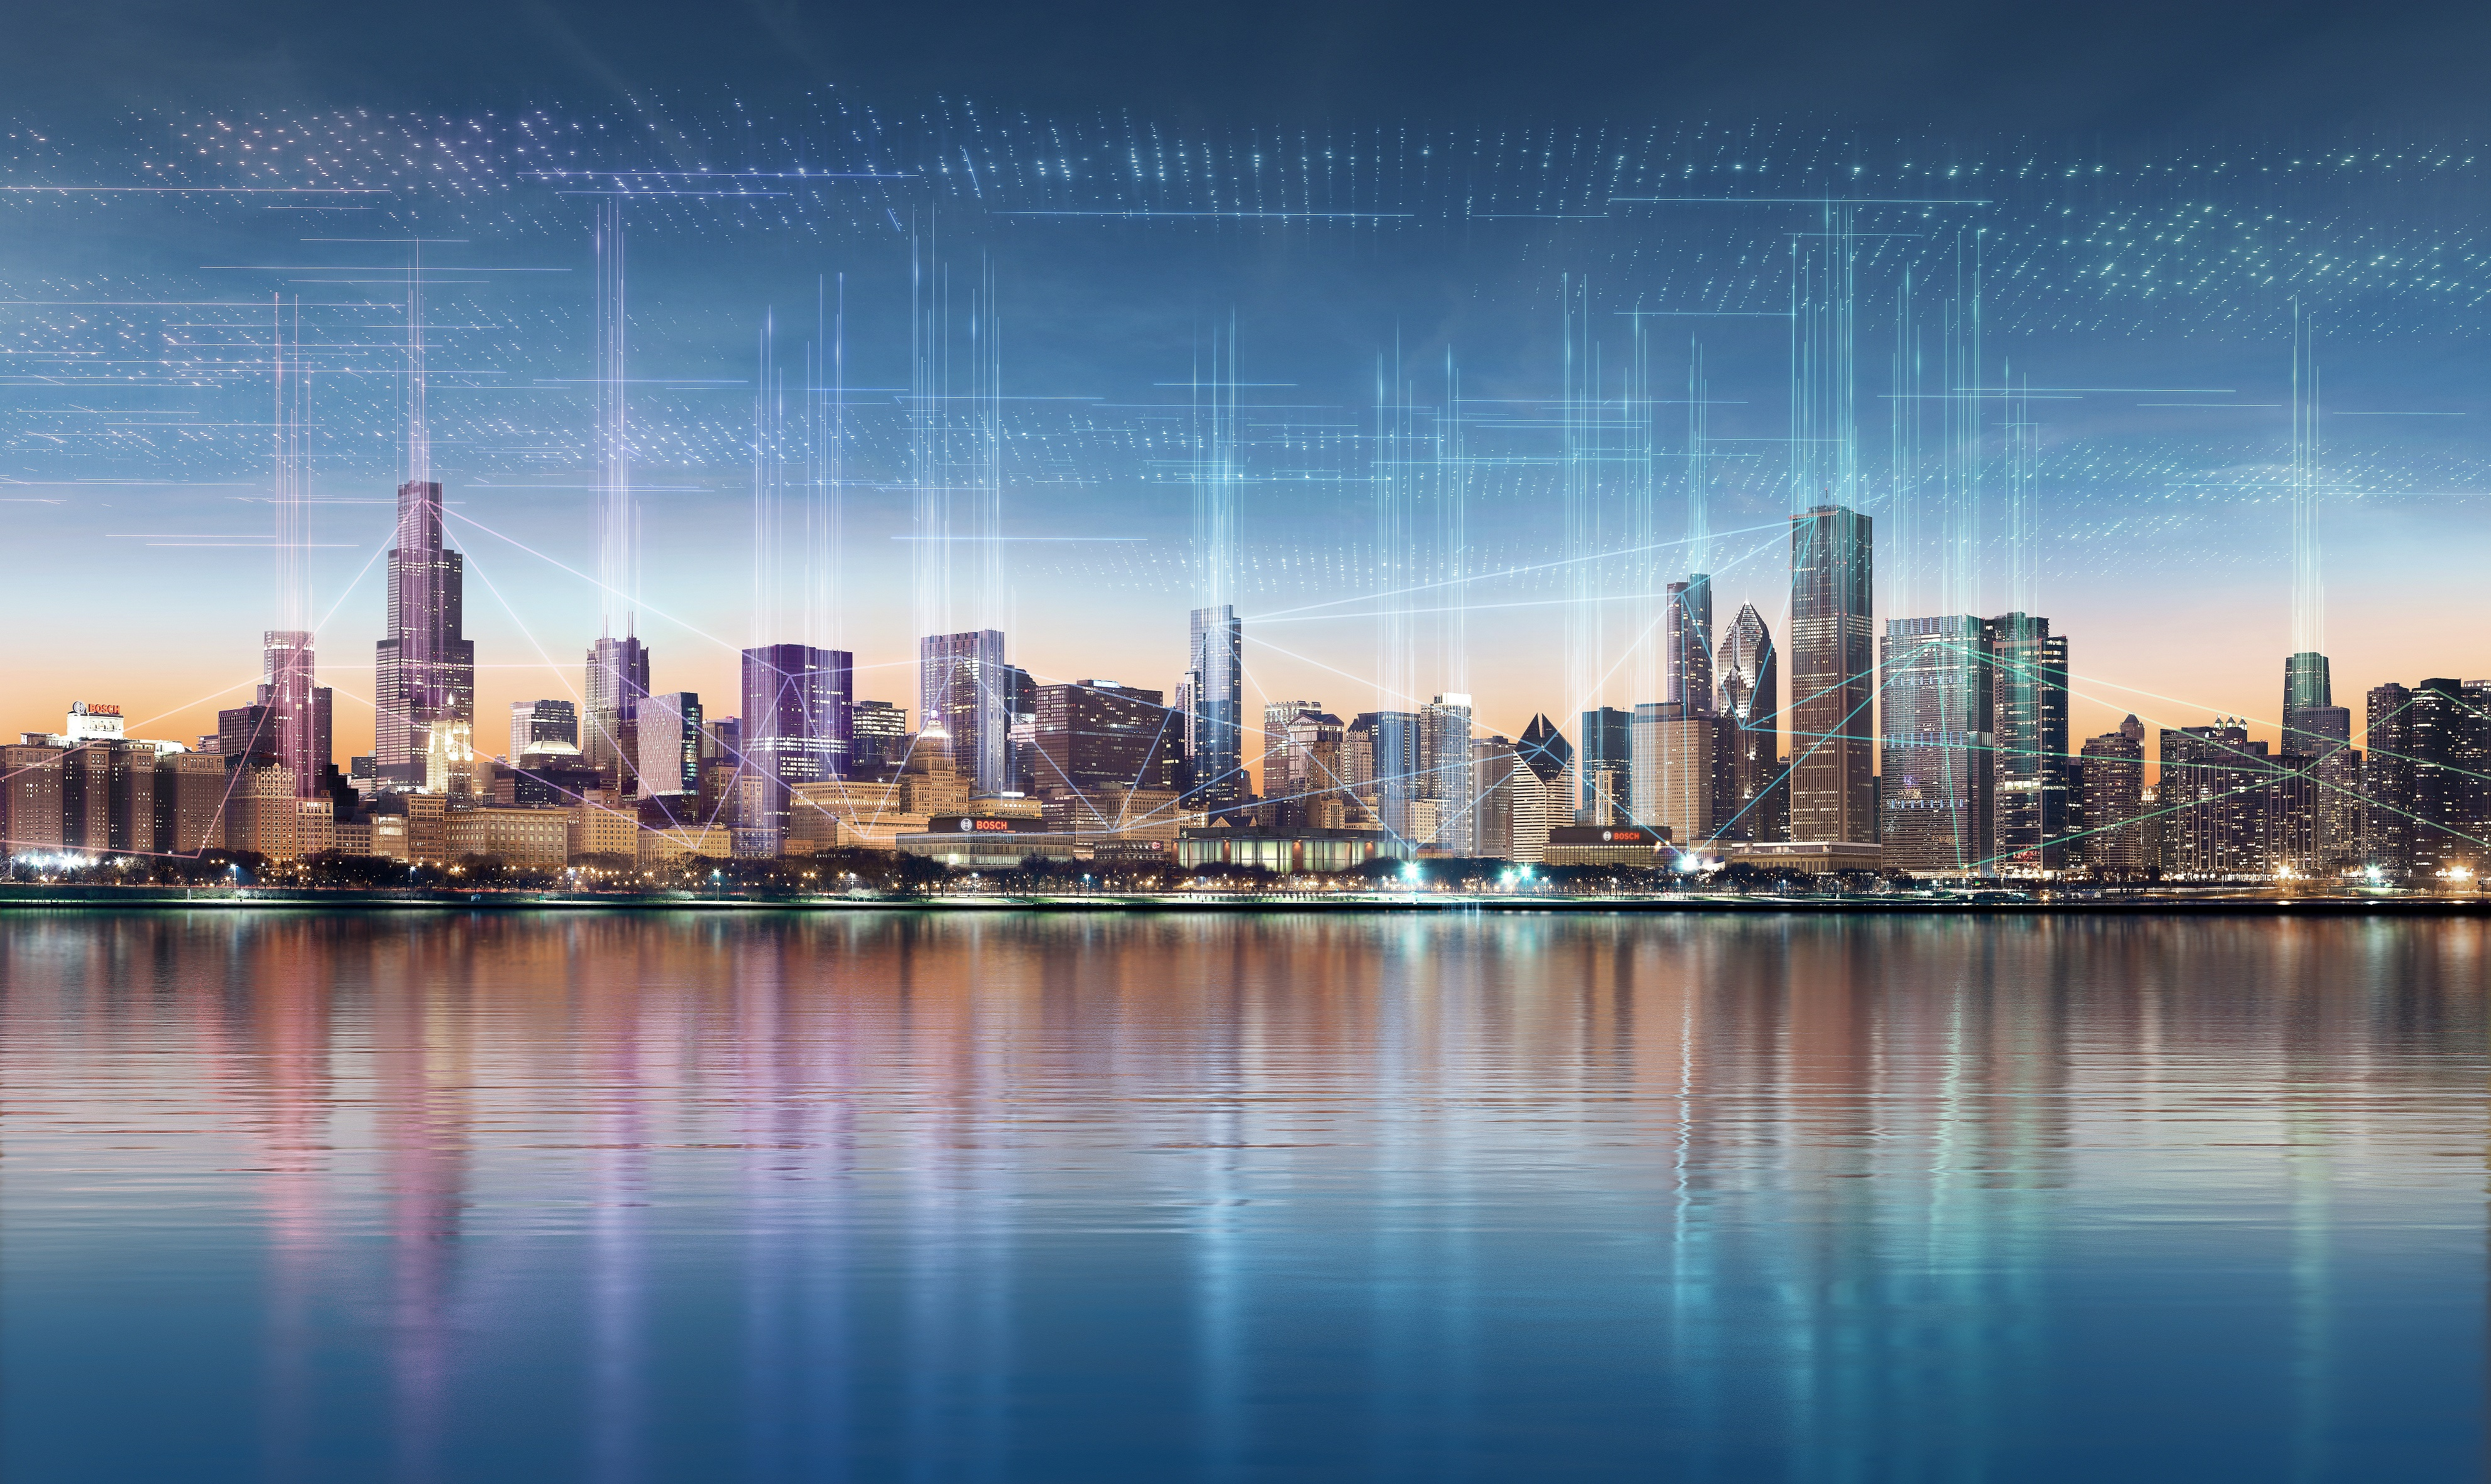 Bosch's transformation into an IoT company